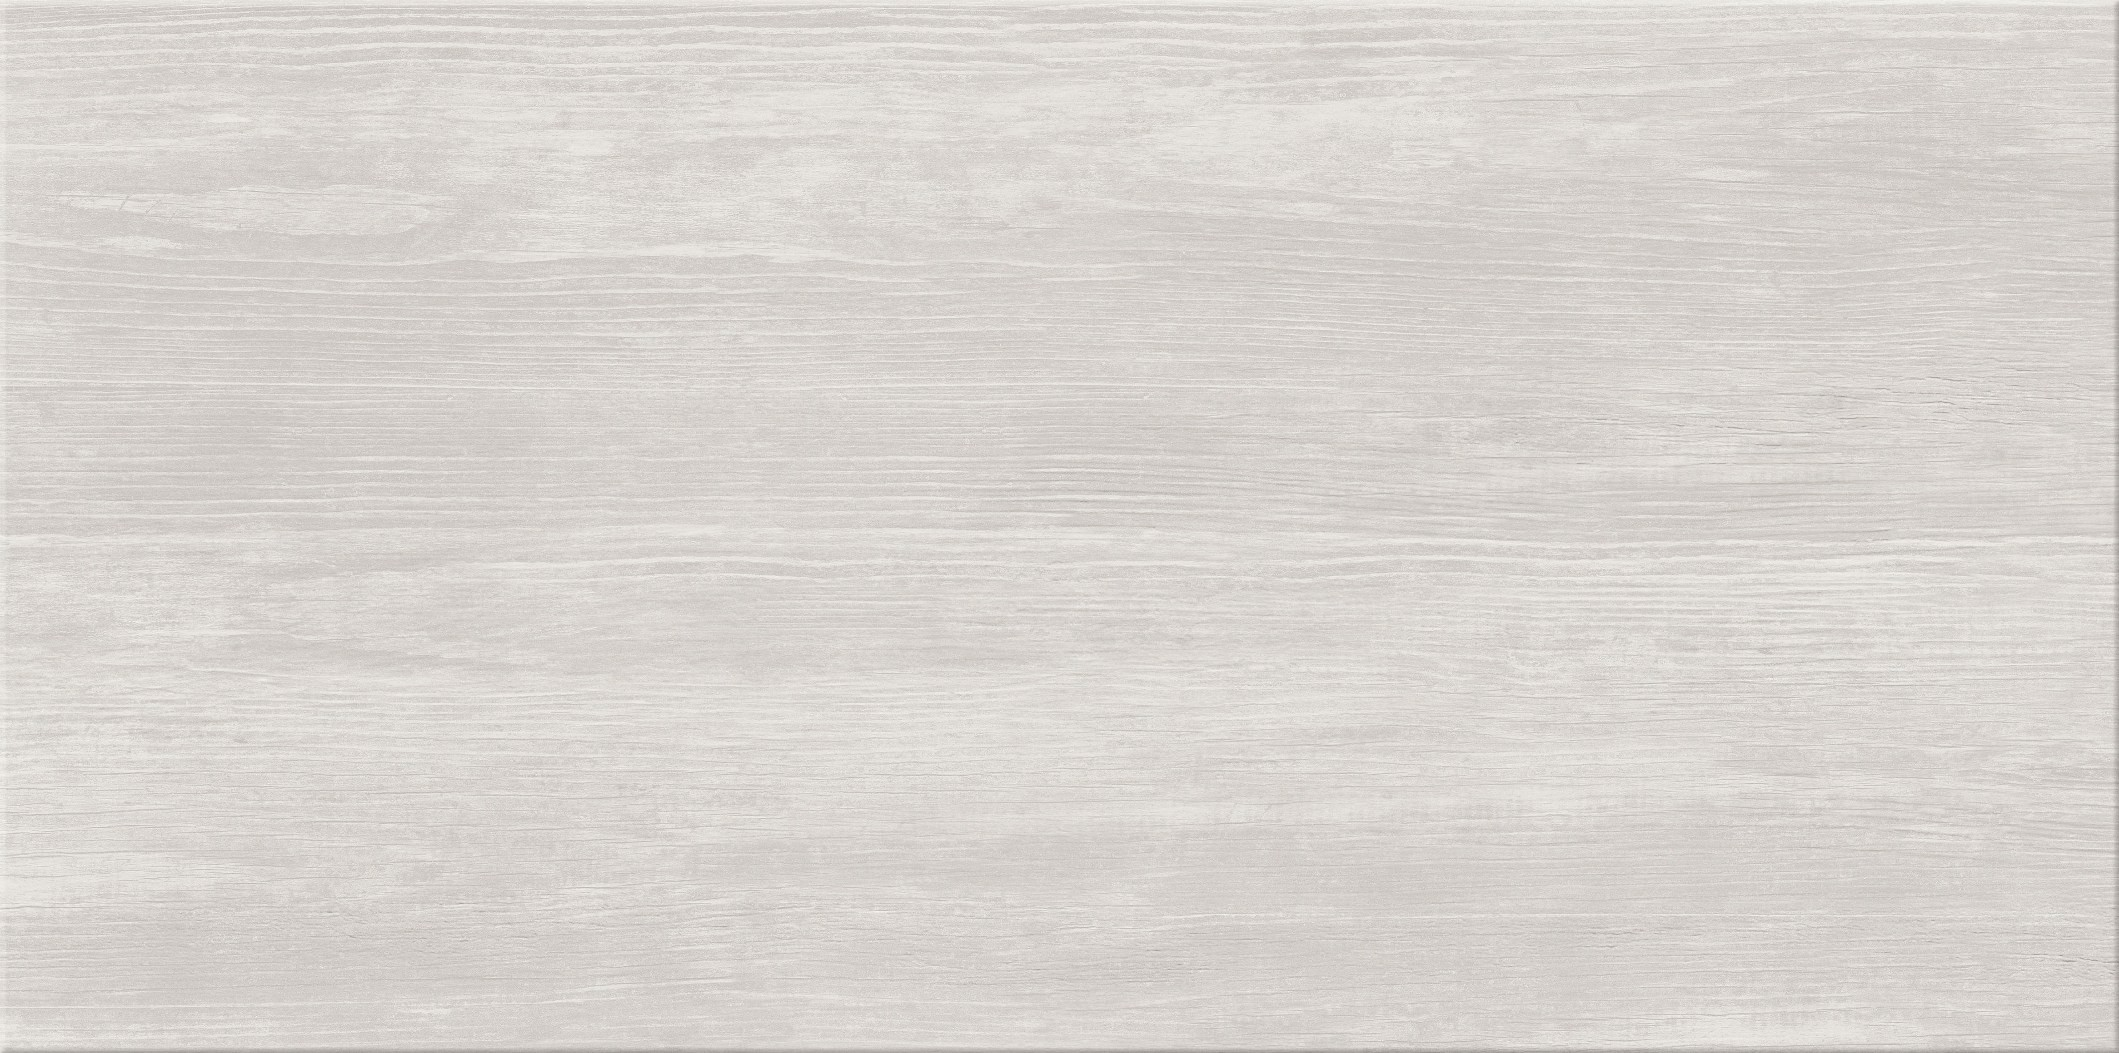 Desa White Structure 29cm x 59cm Wall and Floor Tile - Al-Murad